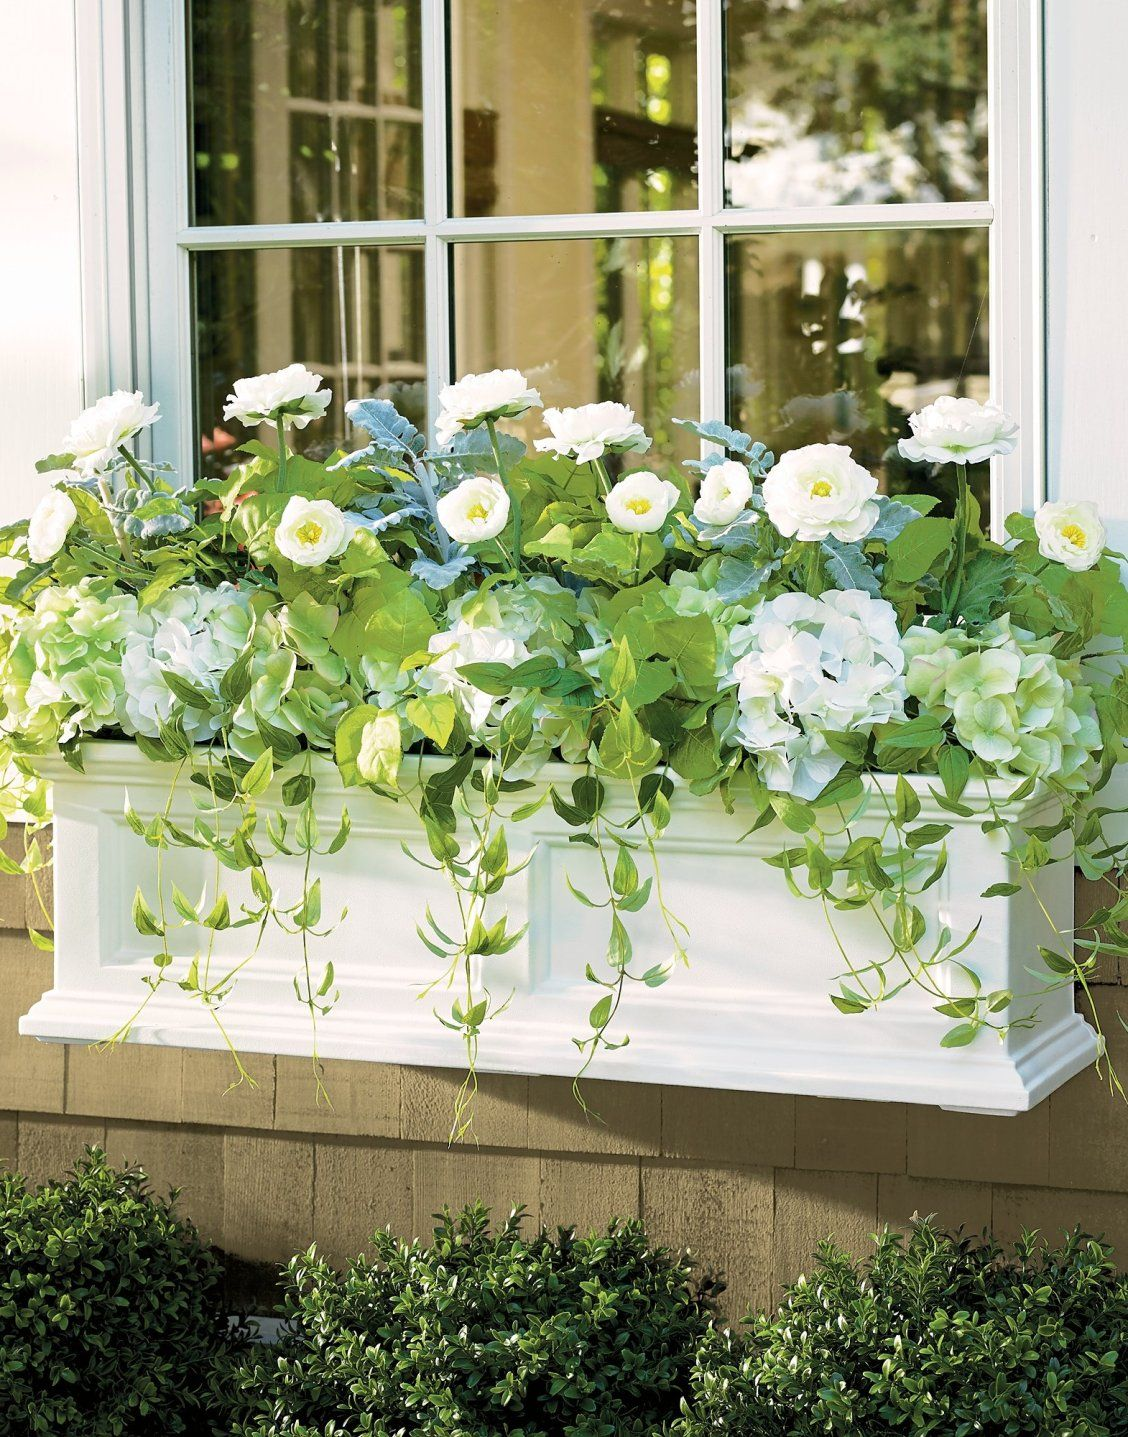 Devon selfwatering window box planter with images